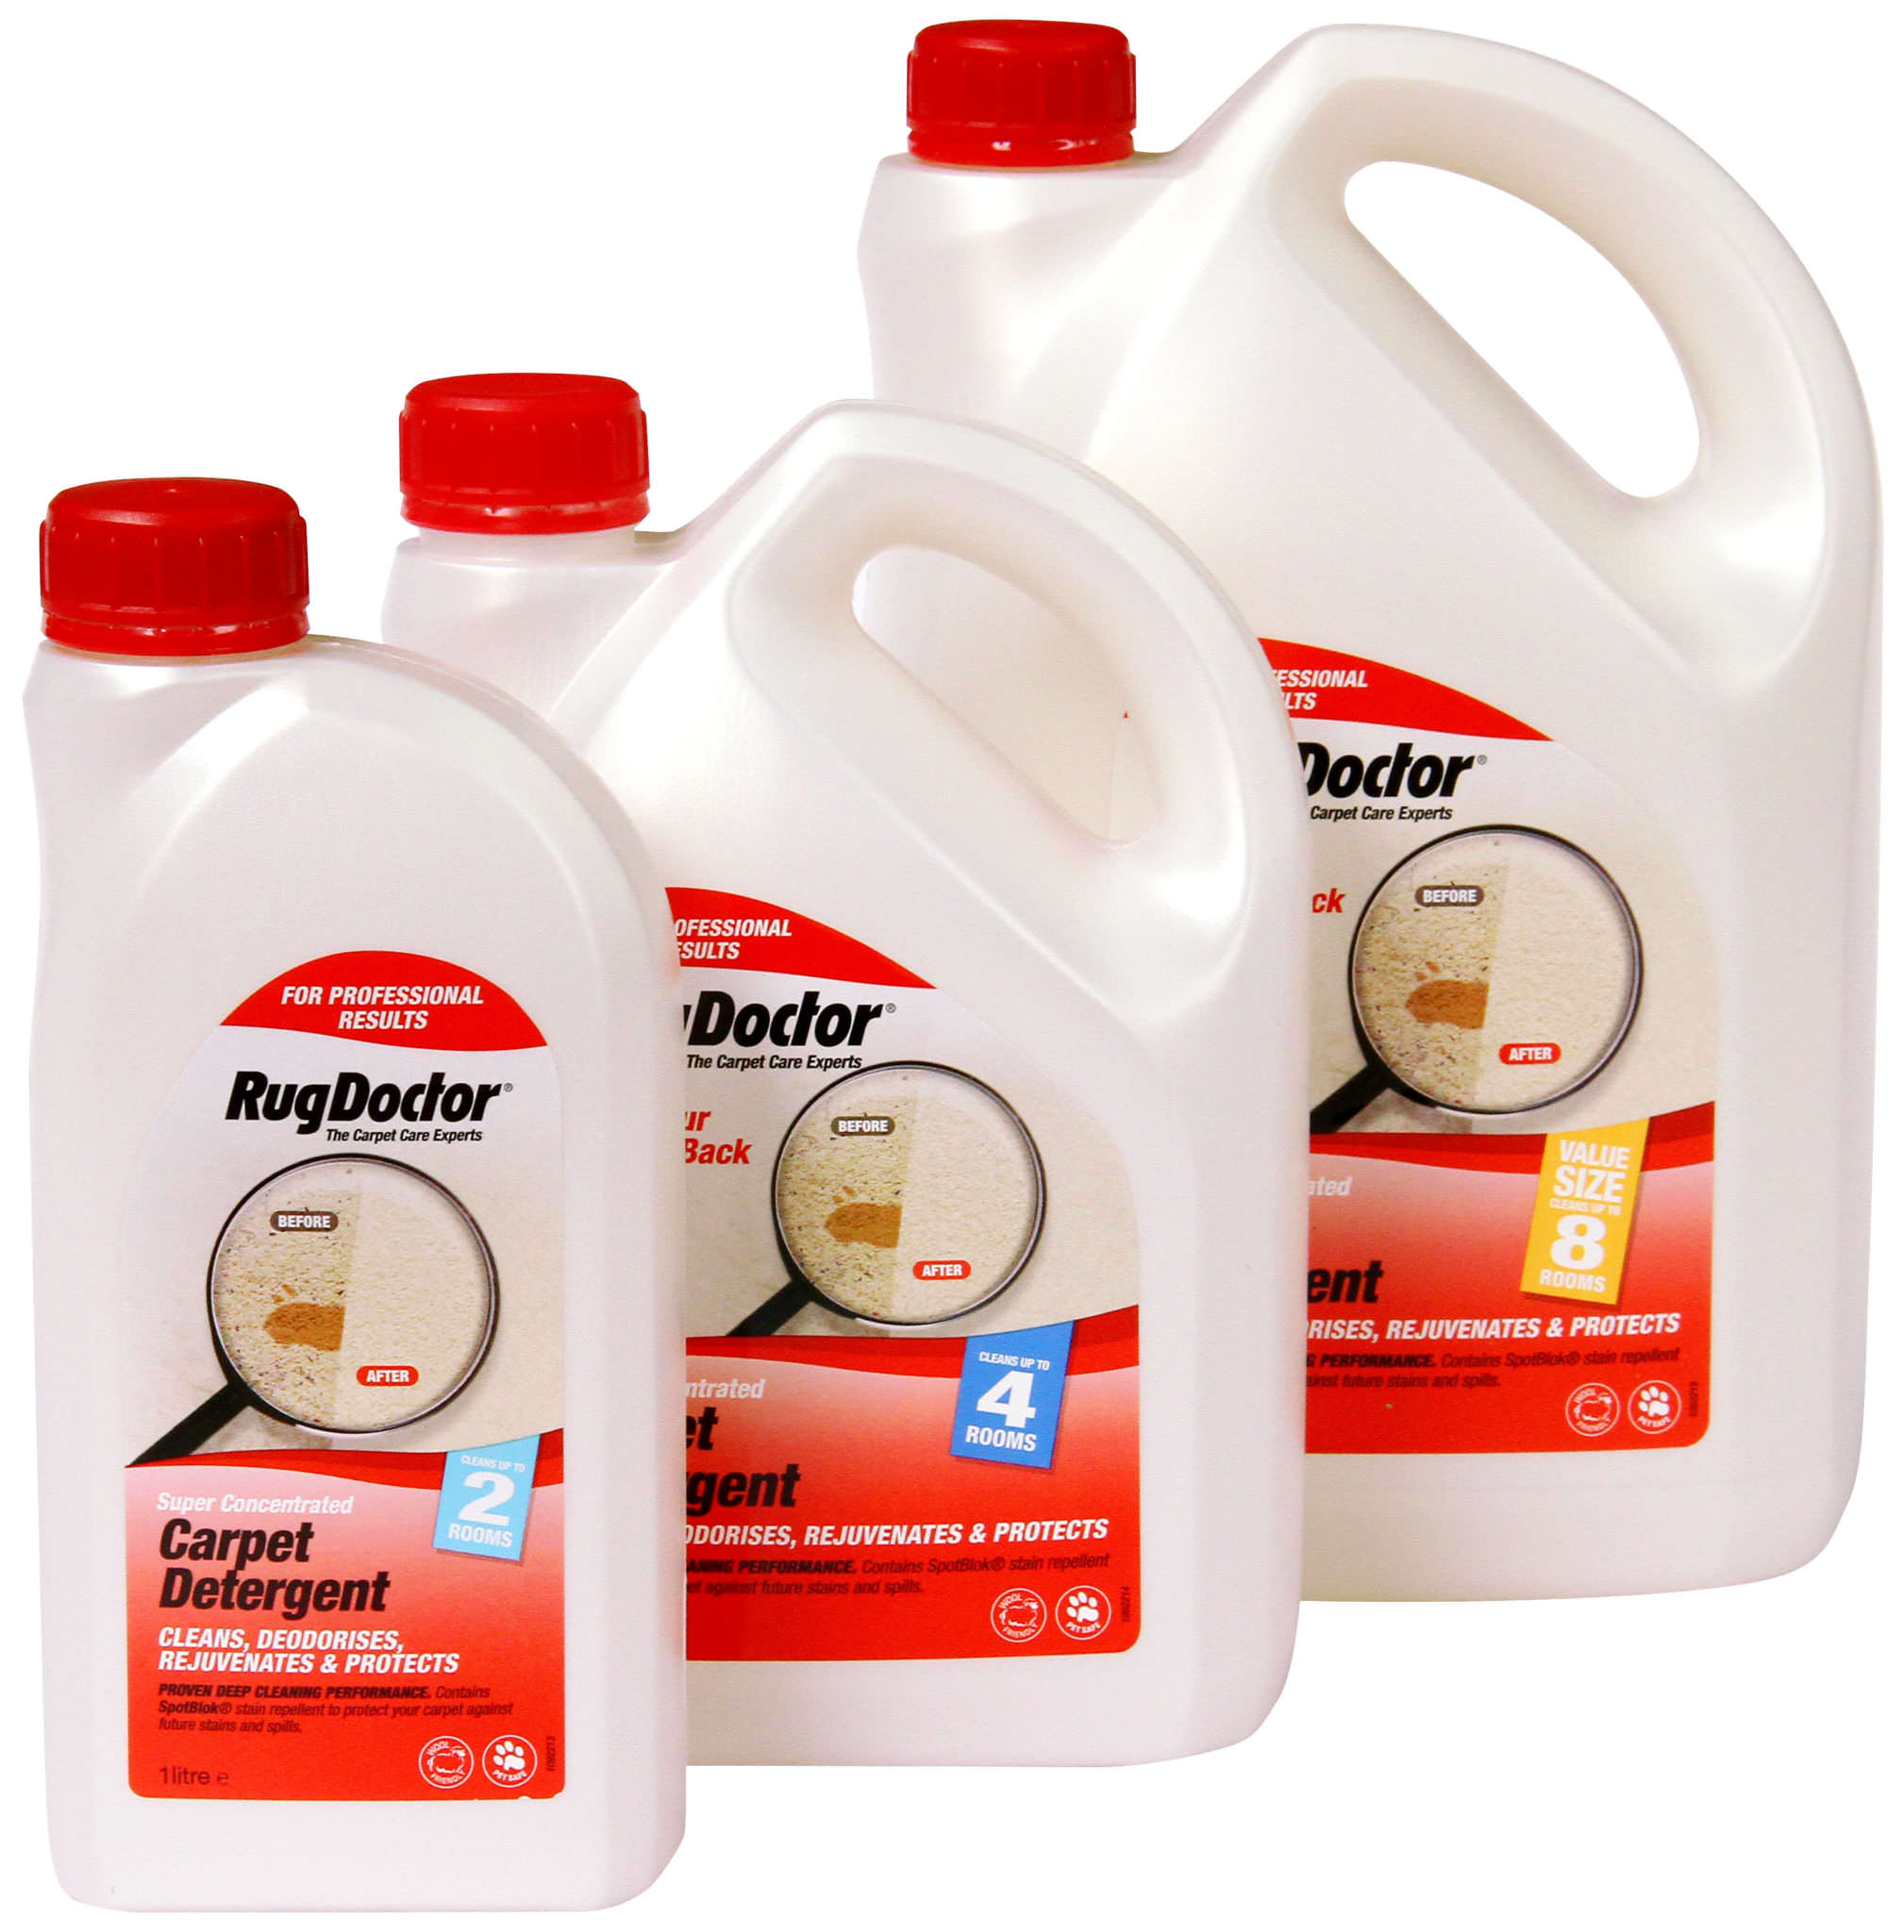 Carpet Detergents